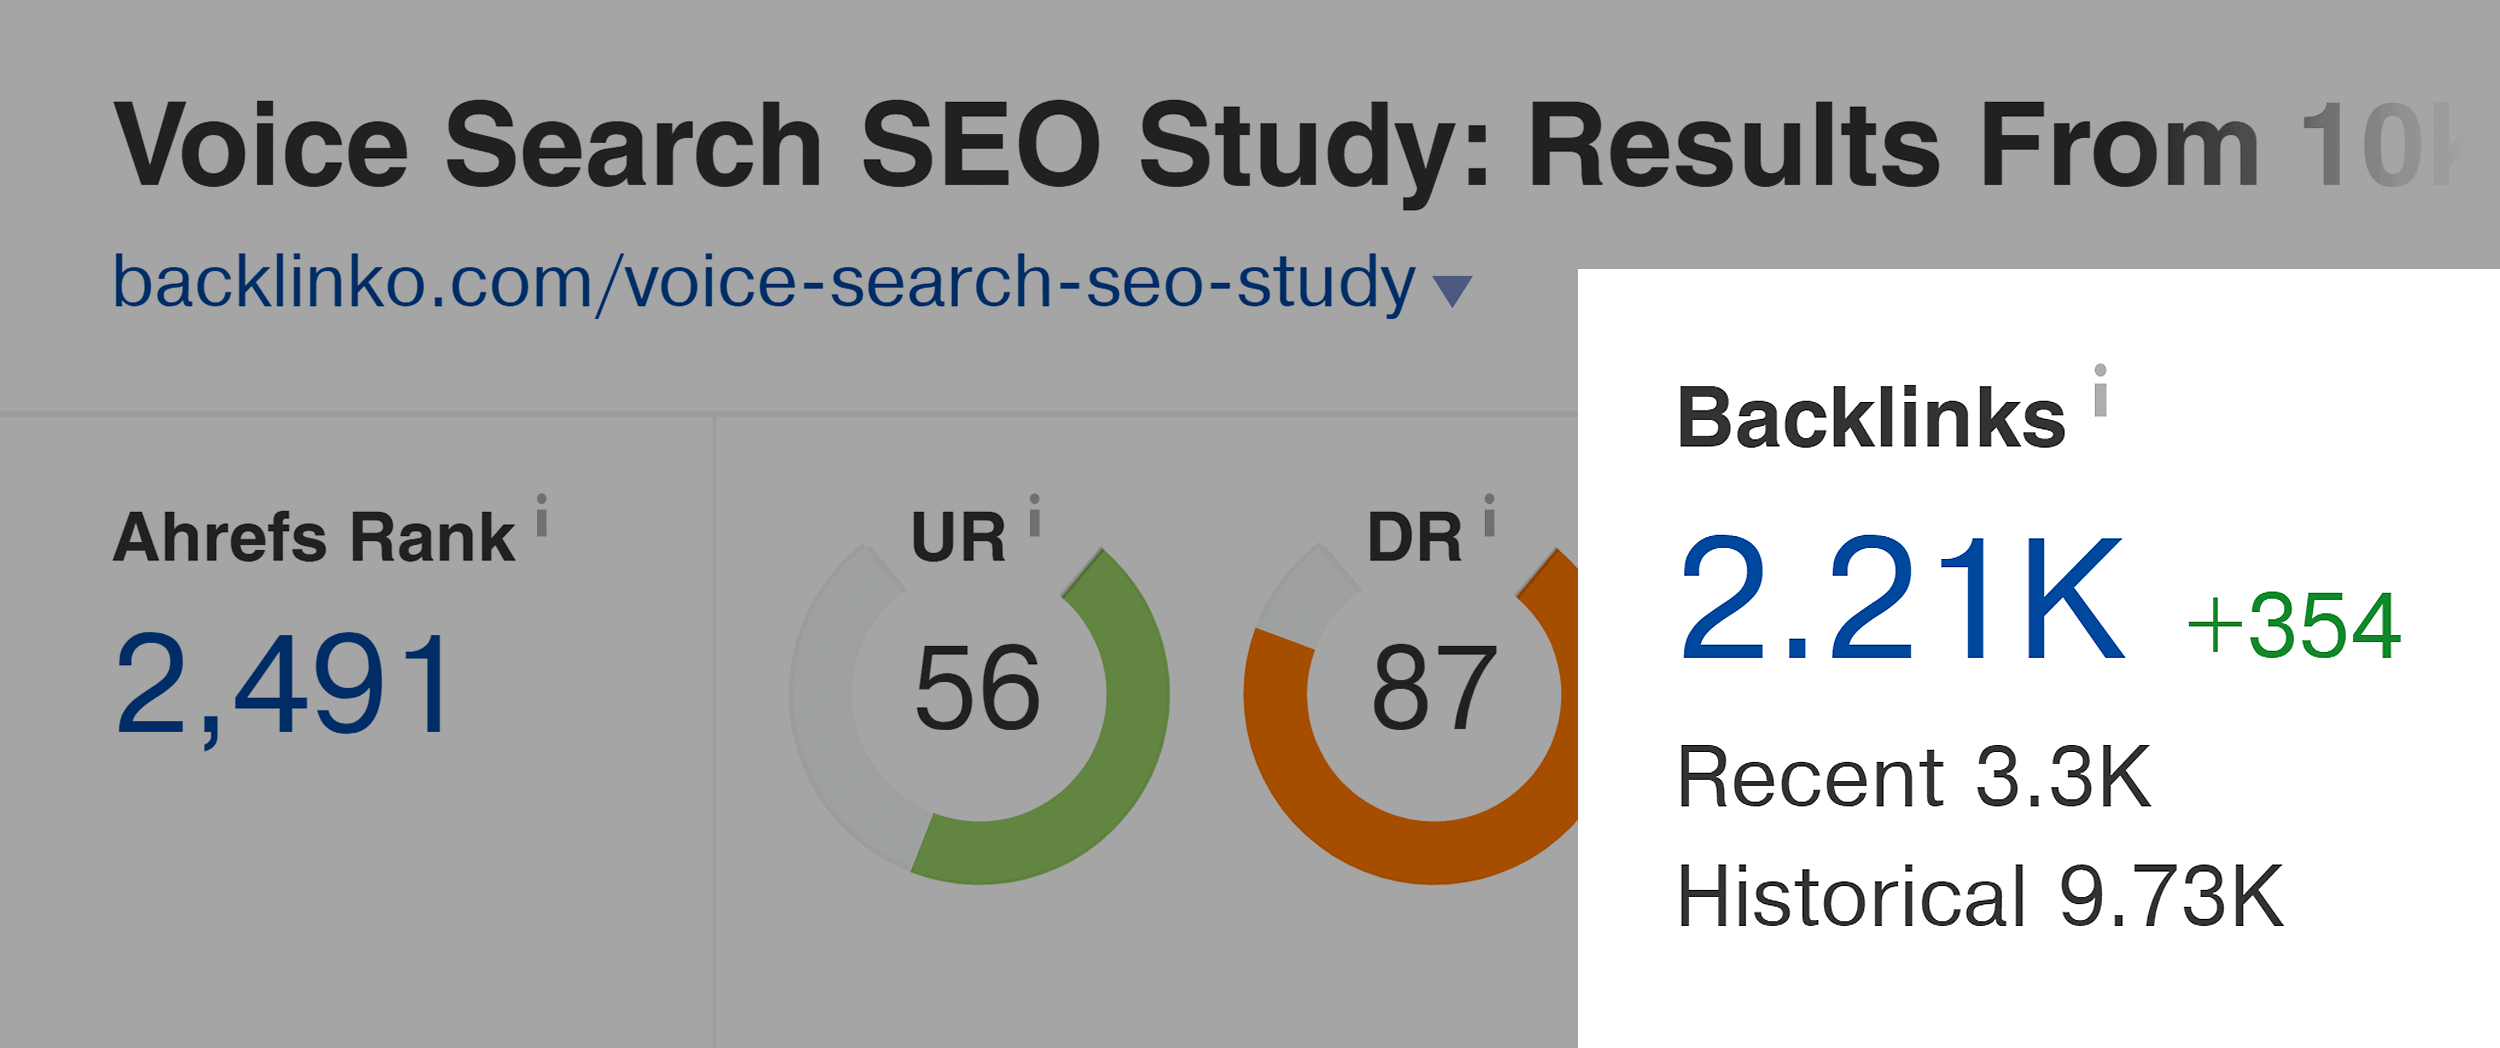 Voice Search SEO Study Backlinks